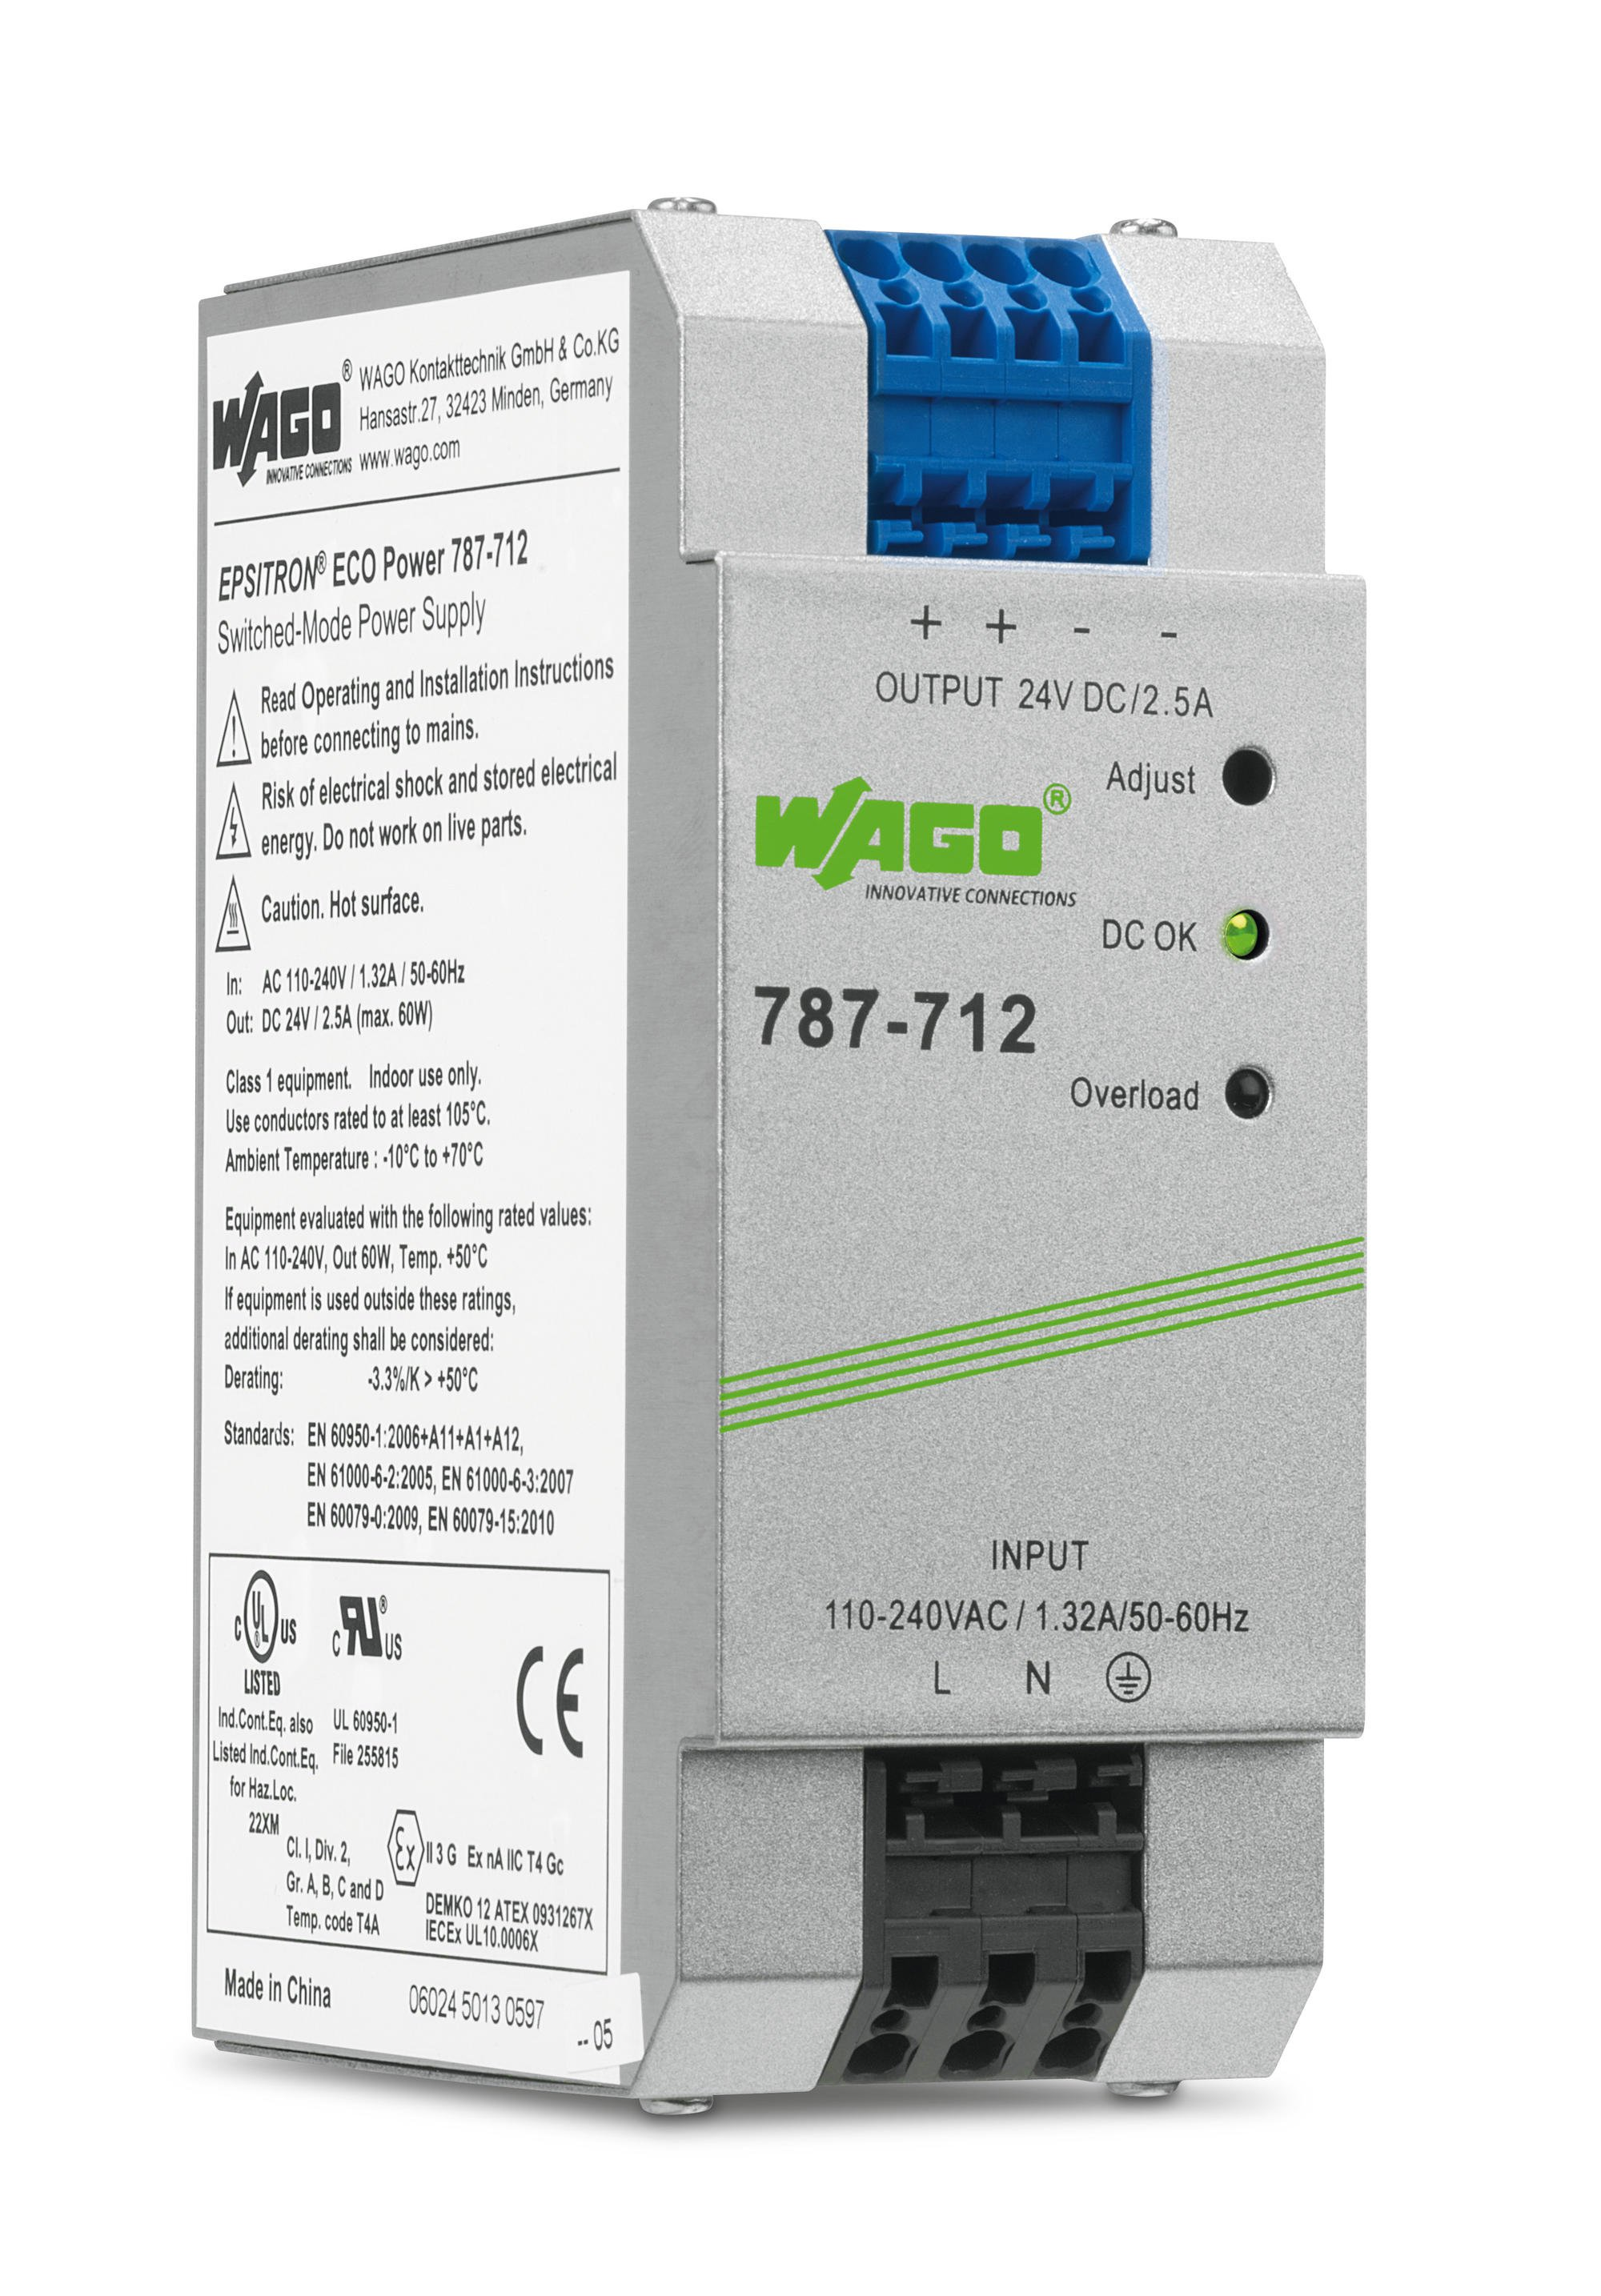 Wago Four And Eight Channel Ecbs How Does Circuit Breaker Work Switched Mode Power Supply Epsitron Eco 1 Phase 24